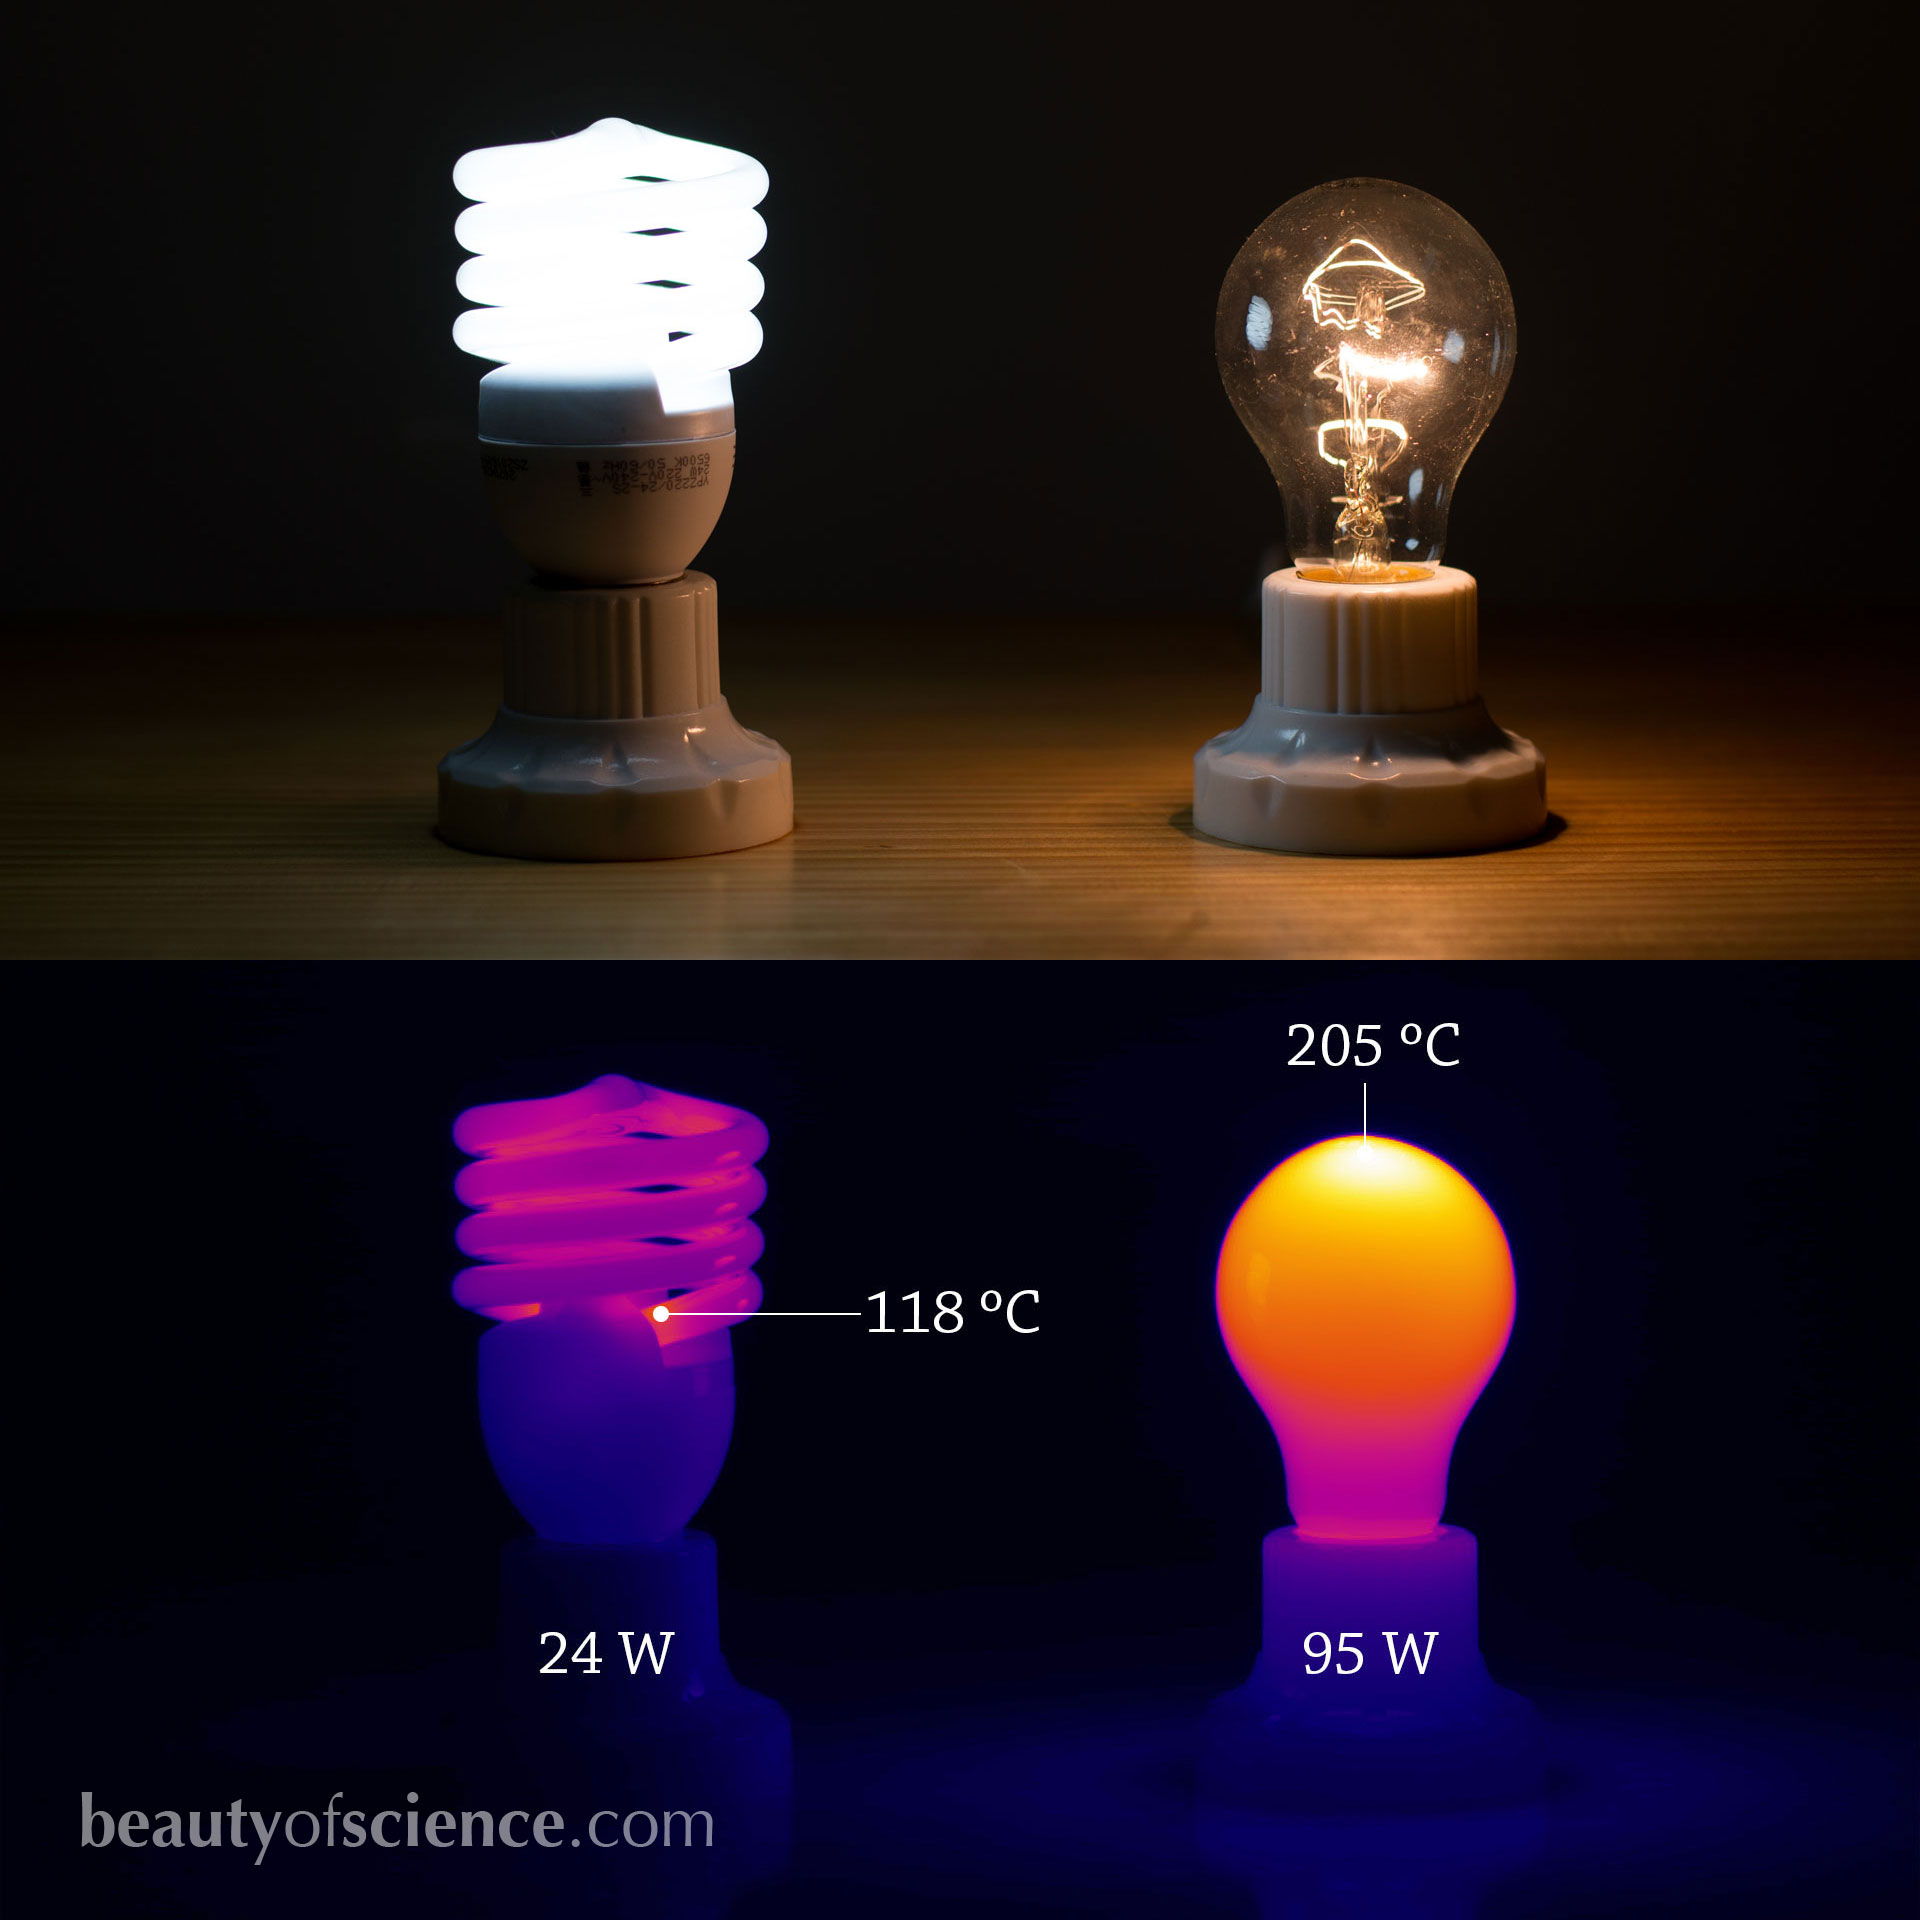 Comparison of fluorescent and incandescent light bulbs, both in the visible light and by using infrared thermal imaging.